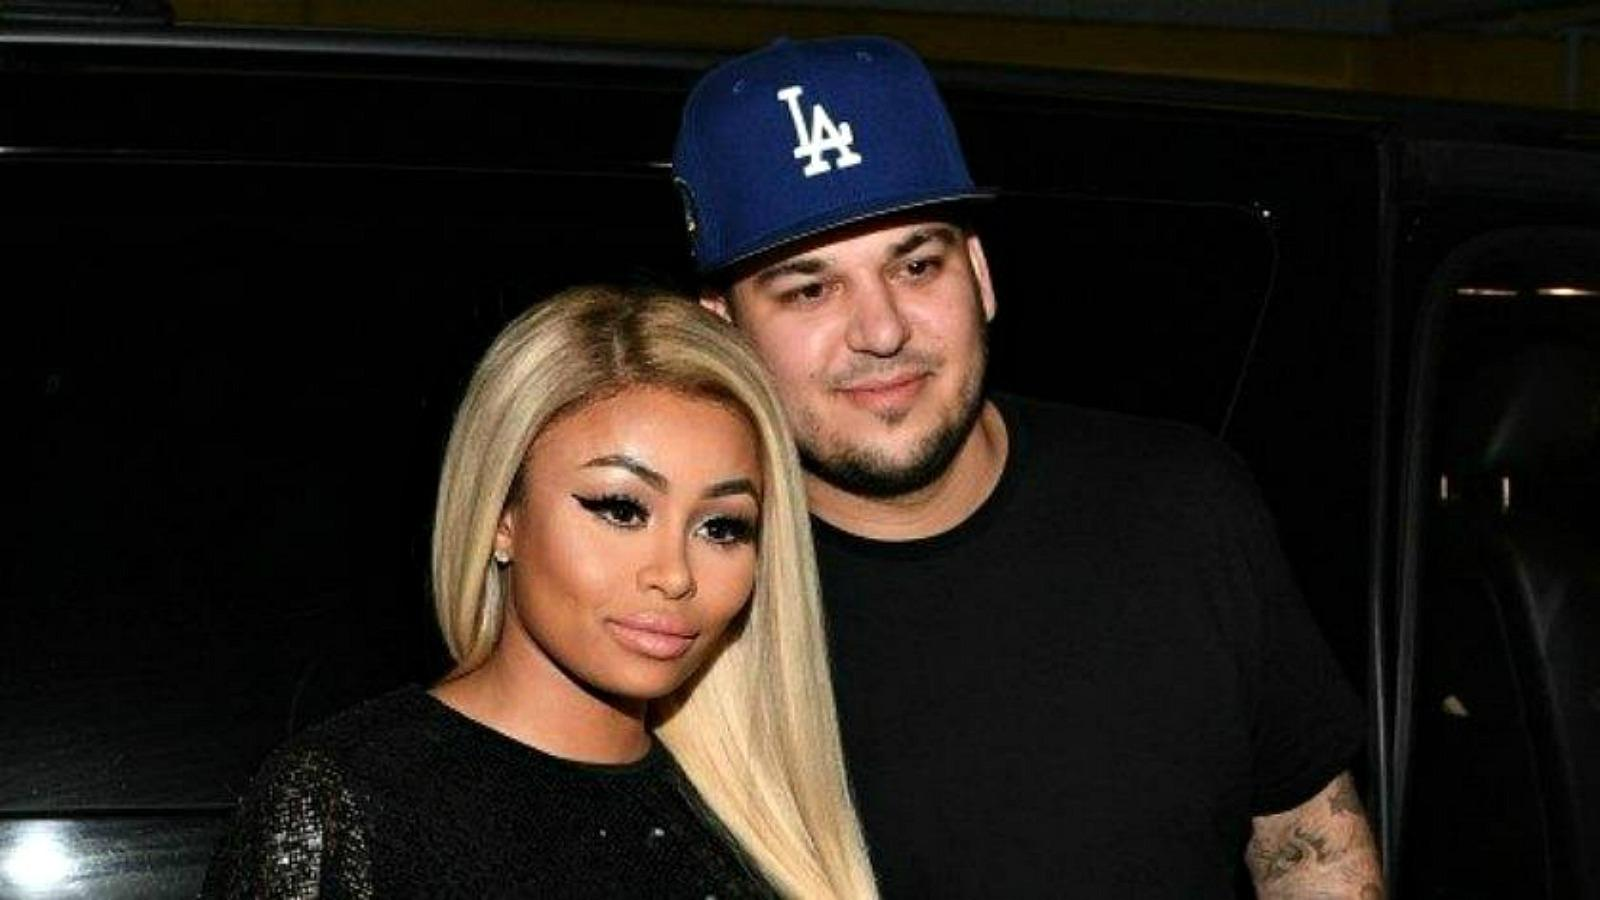 Blac Chyna Shares The First Photo Of Her & Rob Kardashian's Baby